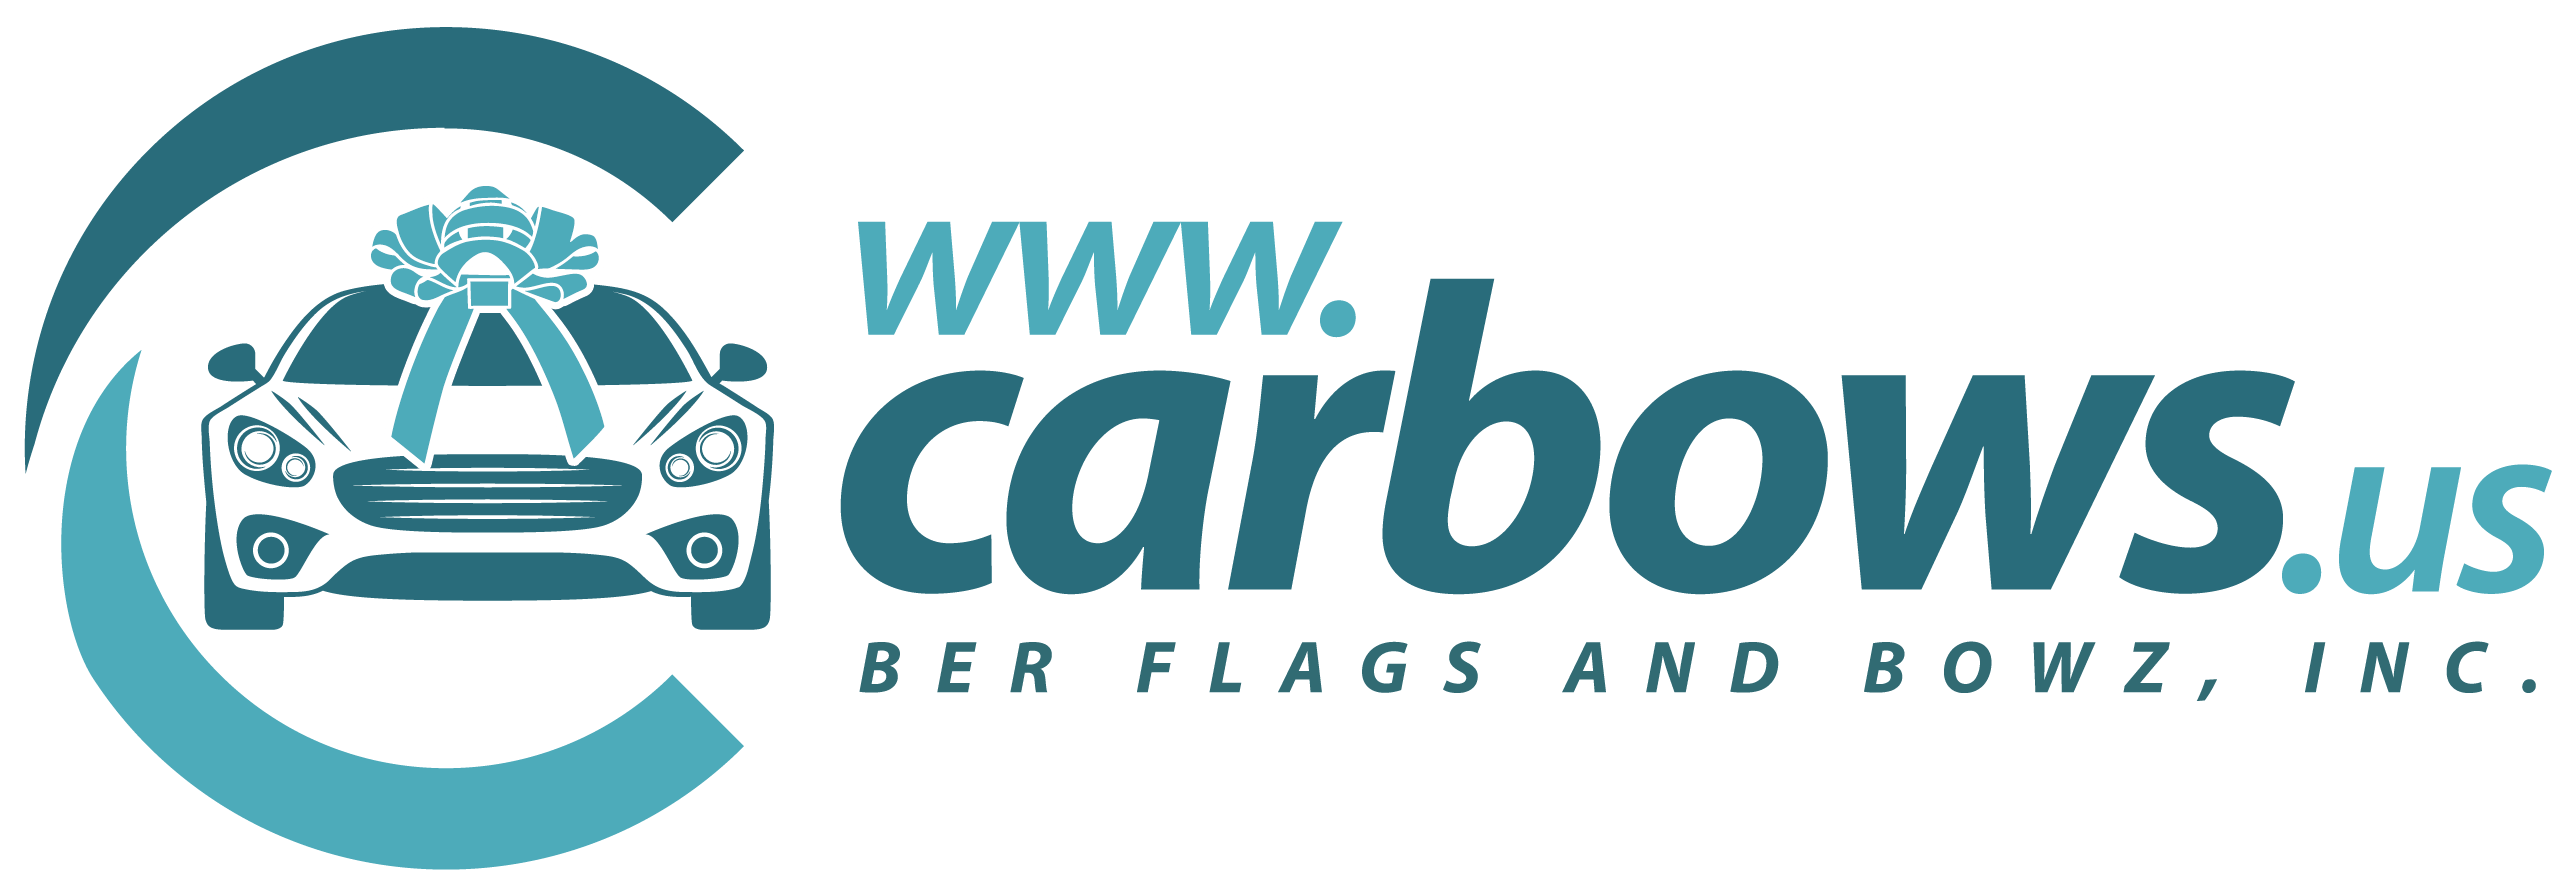 carBows.us logo